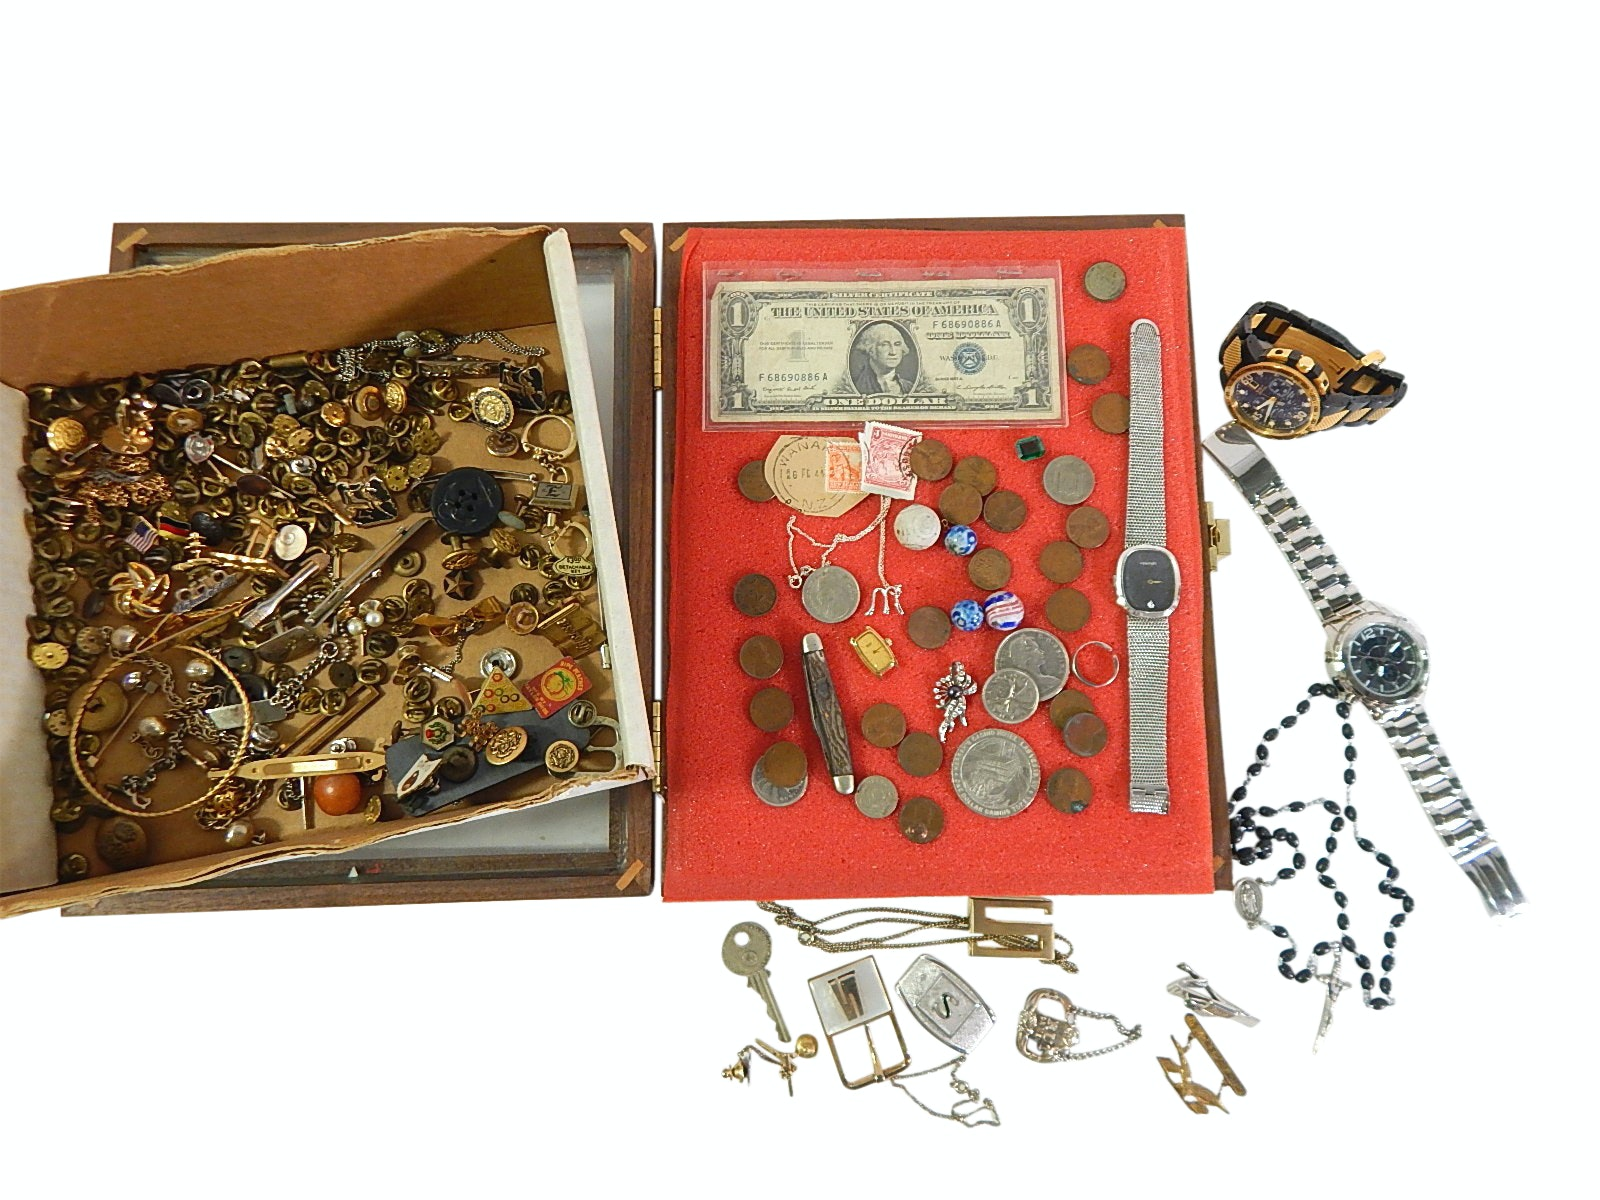 Assorted Jewelry and Coins, Knives, Currency, Watches, Pins, Rosary, Marbles